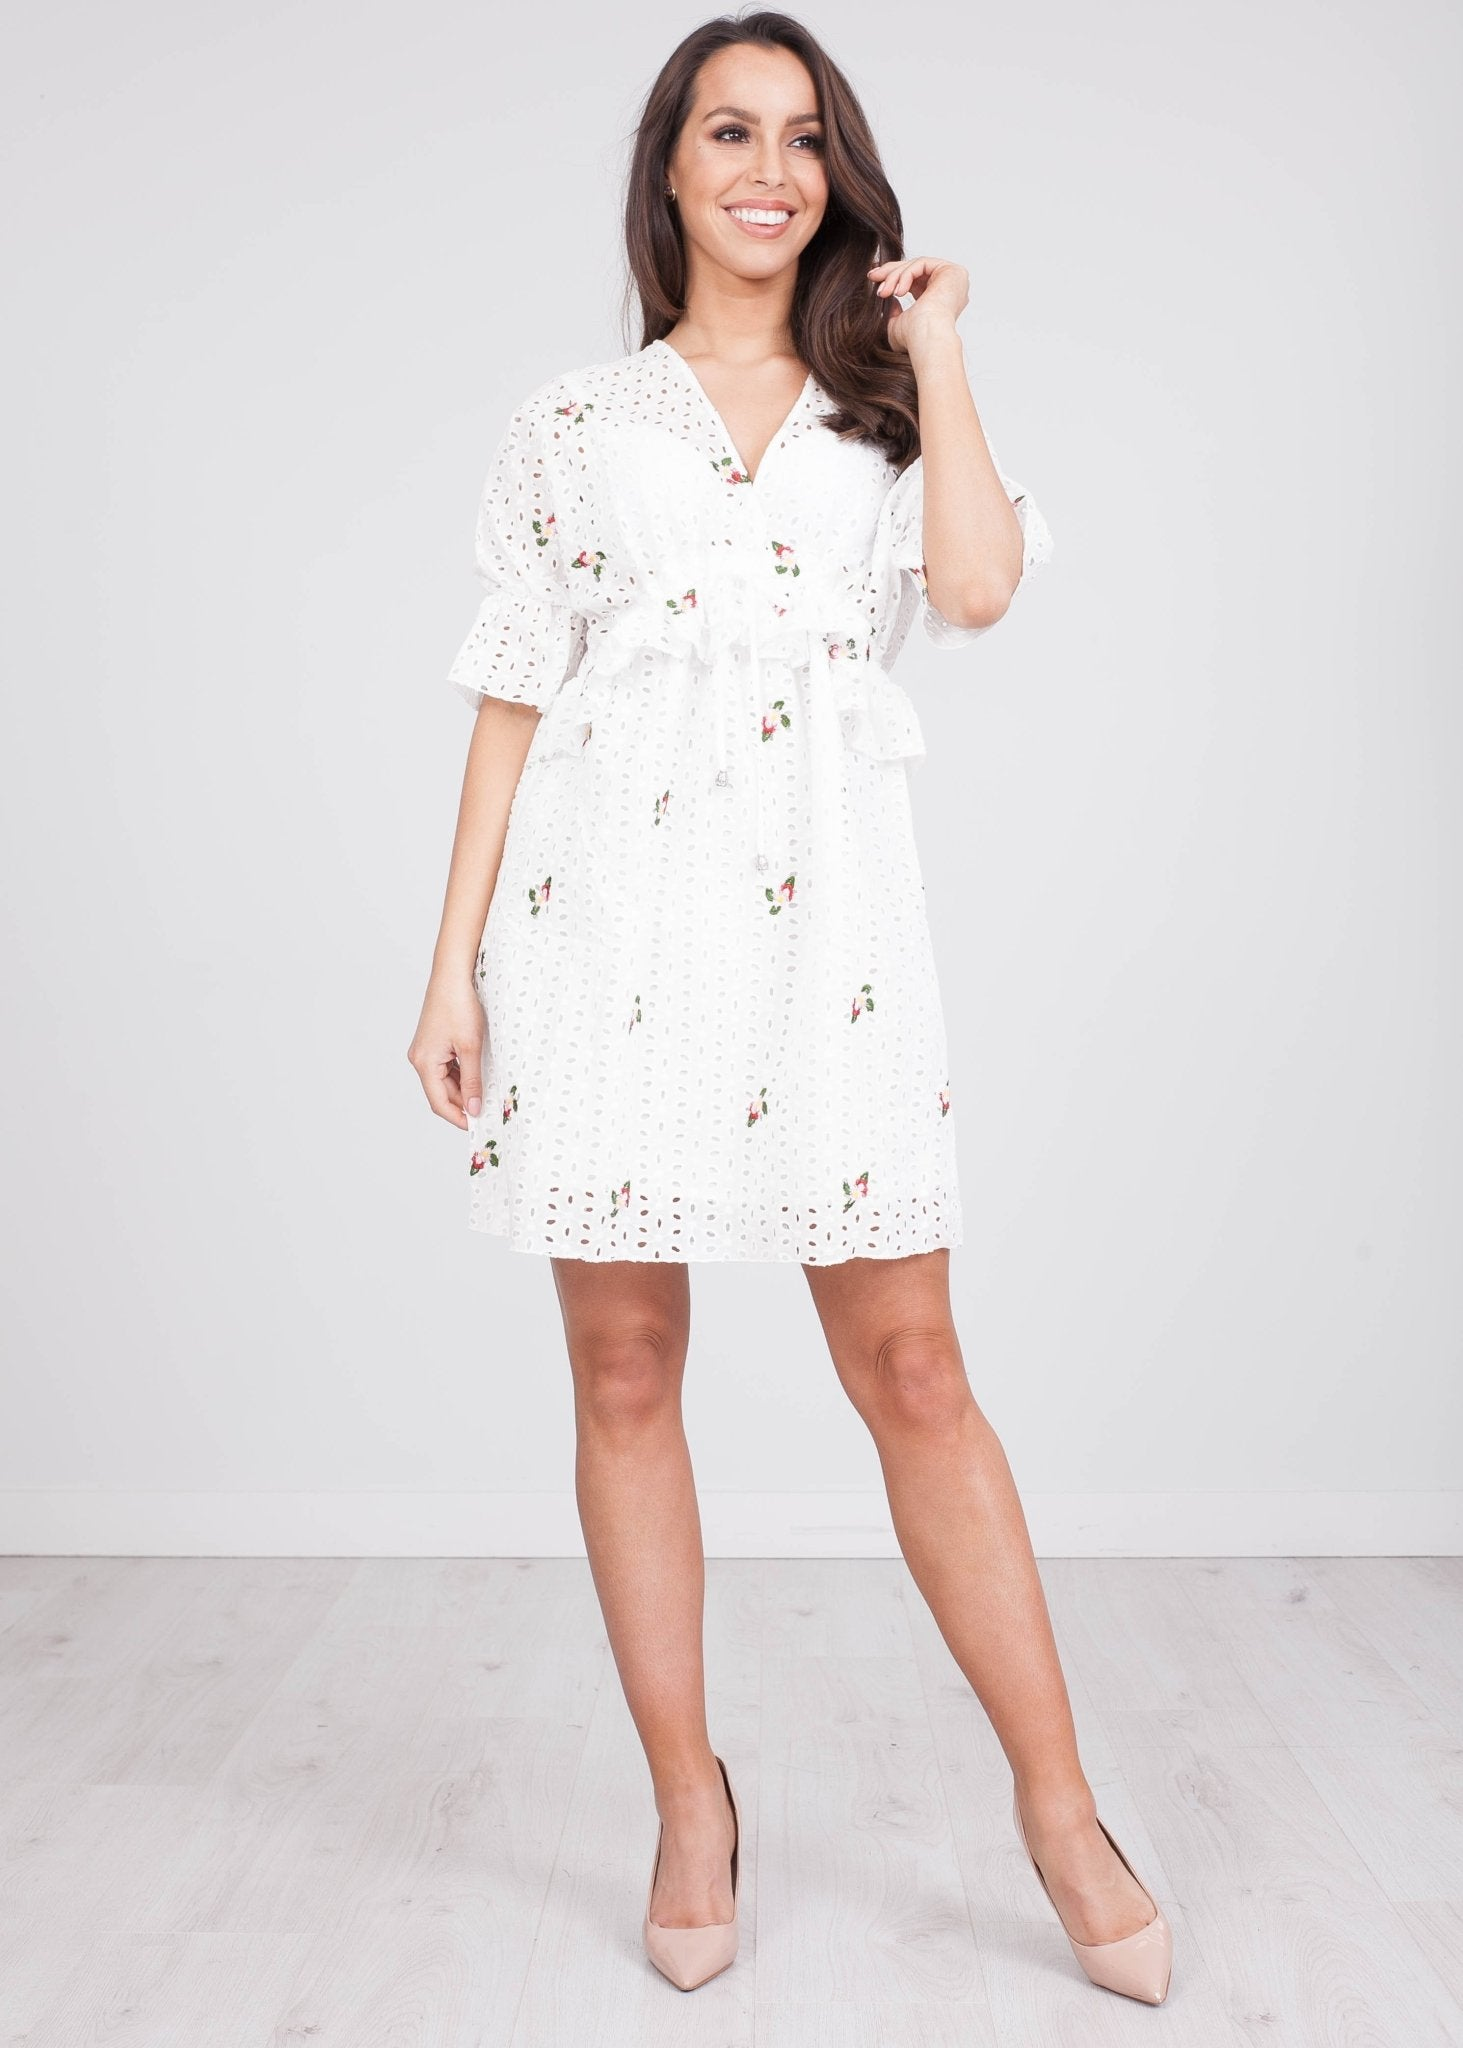 Jasmine White Printed Dress - The Walk in Wardrobe